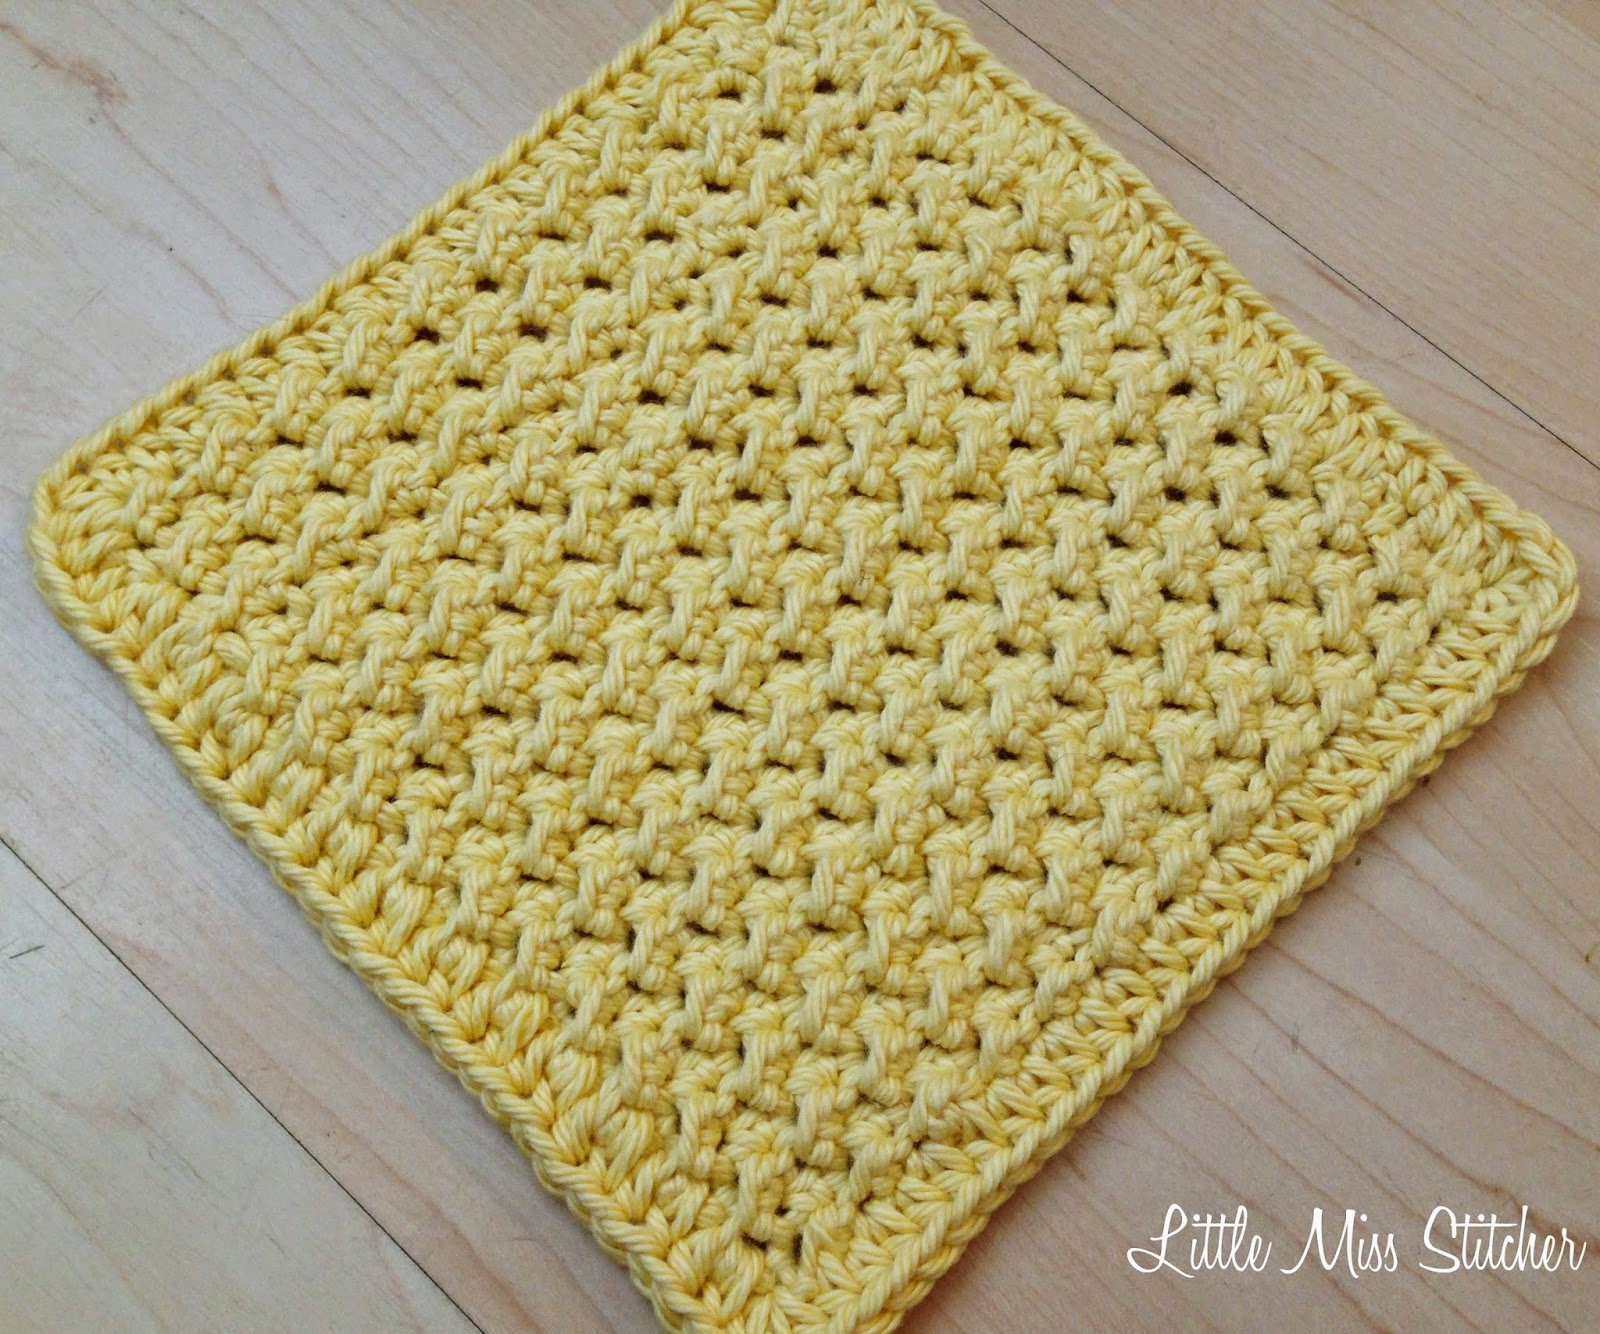 Crochet Patterns Dishcloths Free : Little Miss Stitcher: 5 Free Crochet Dishcloth Patterns